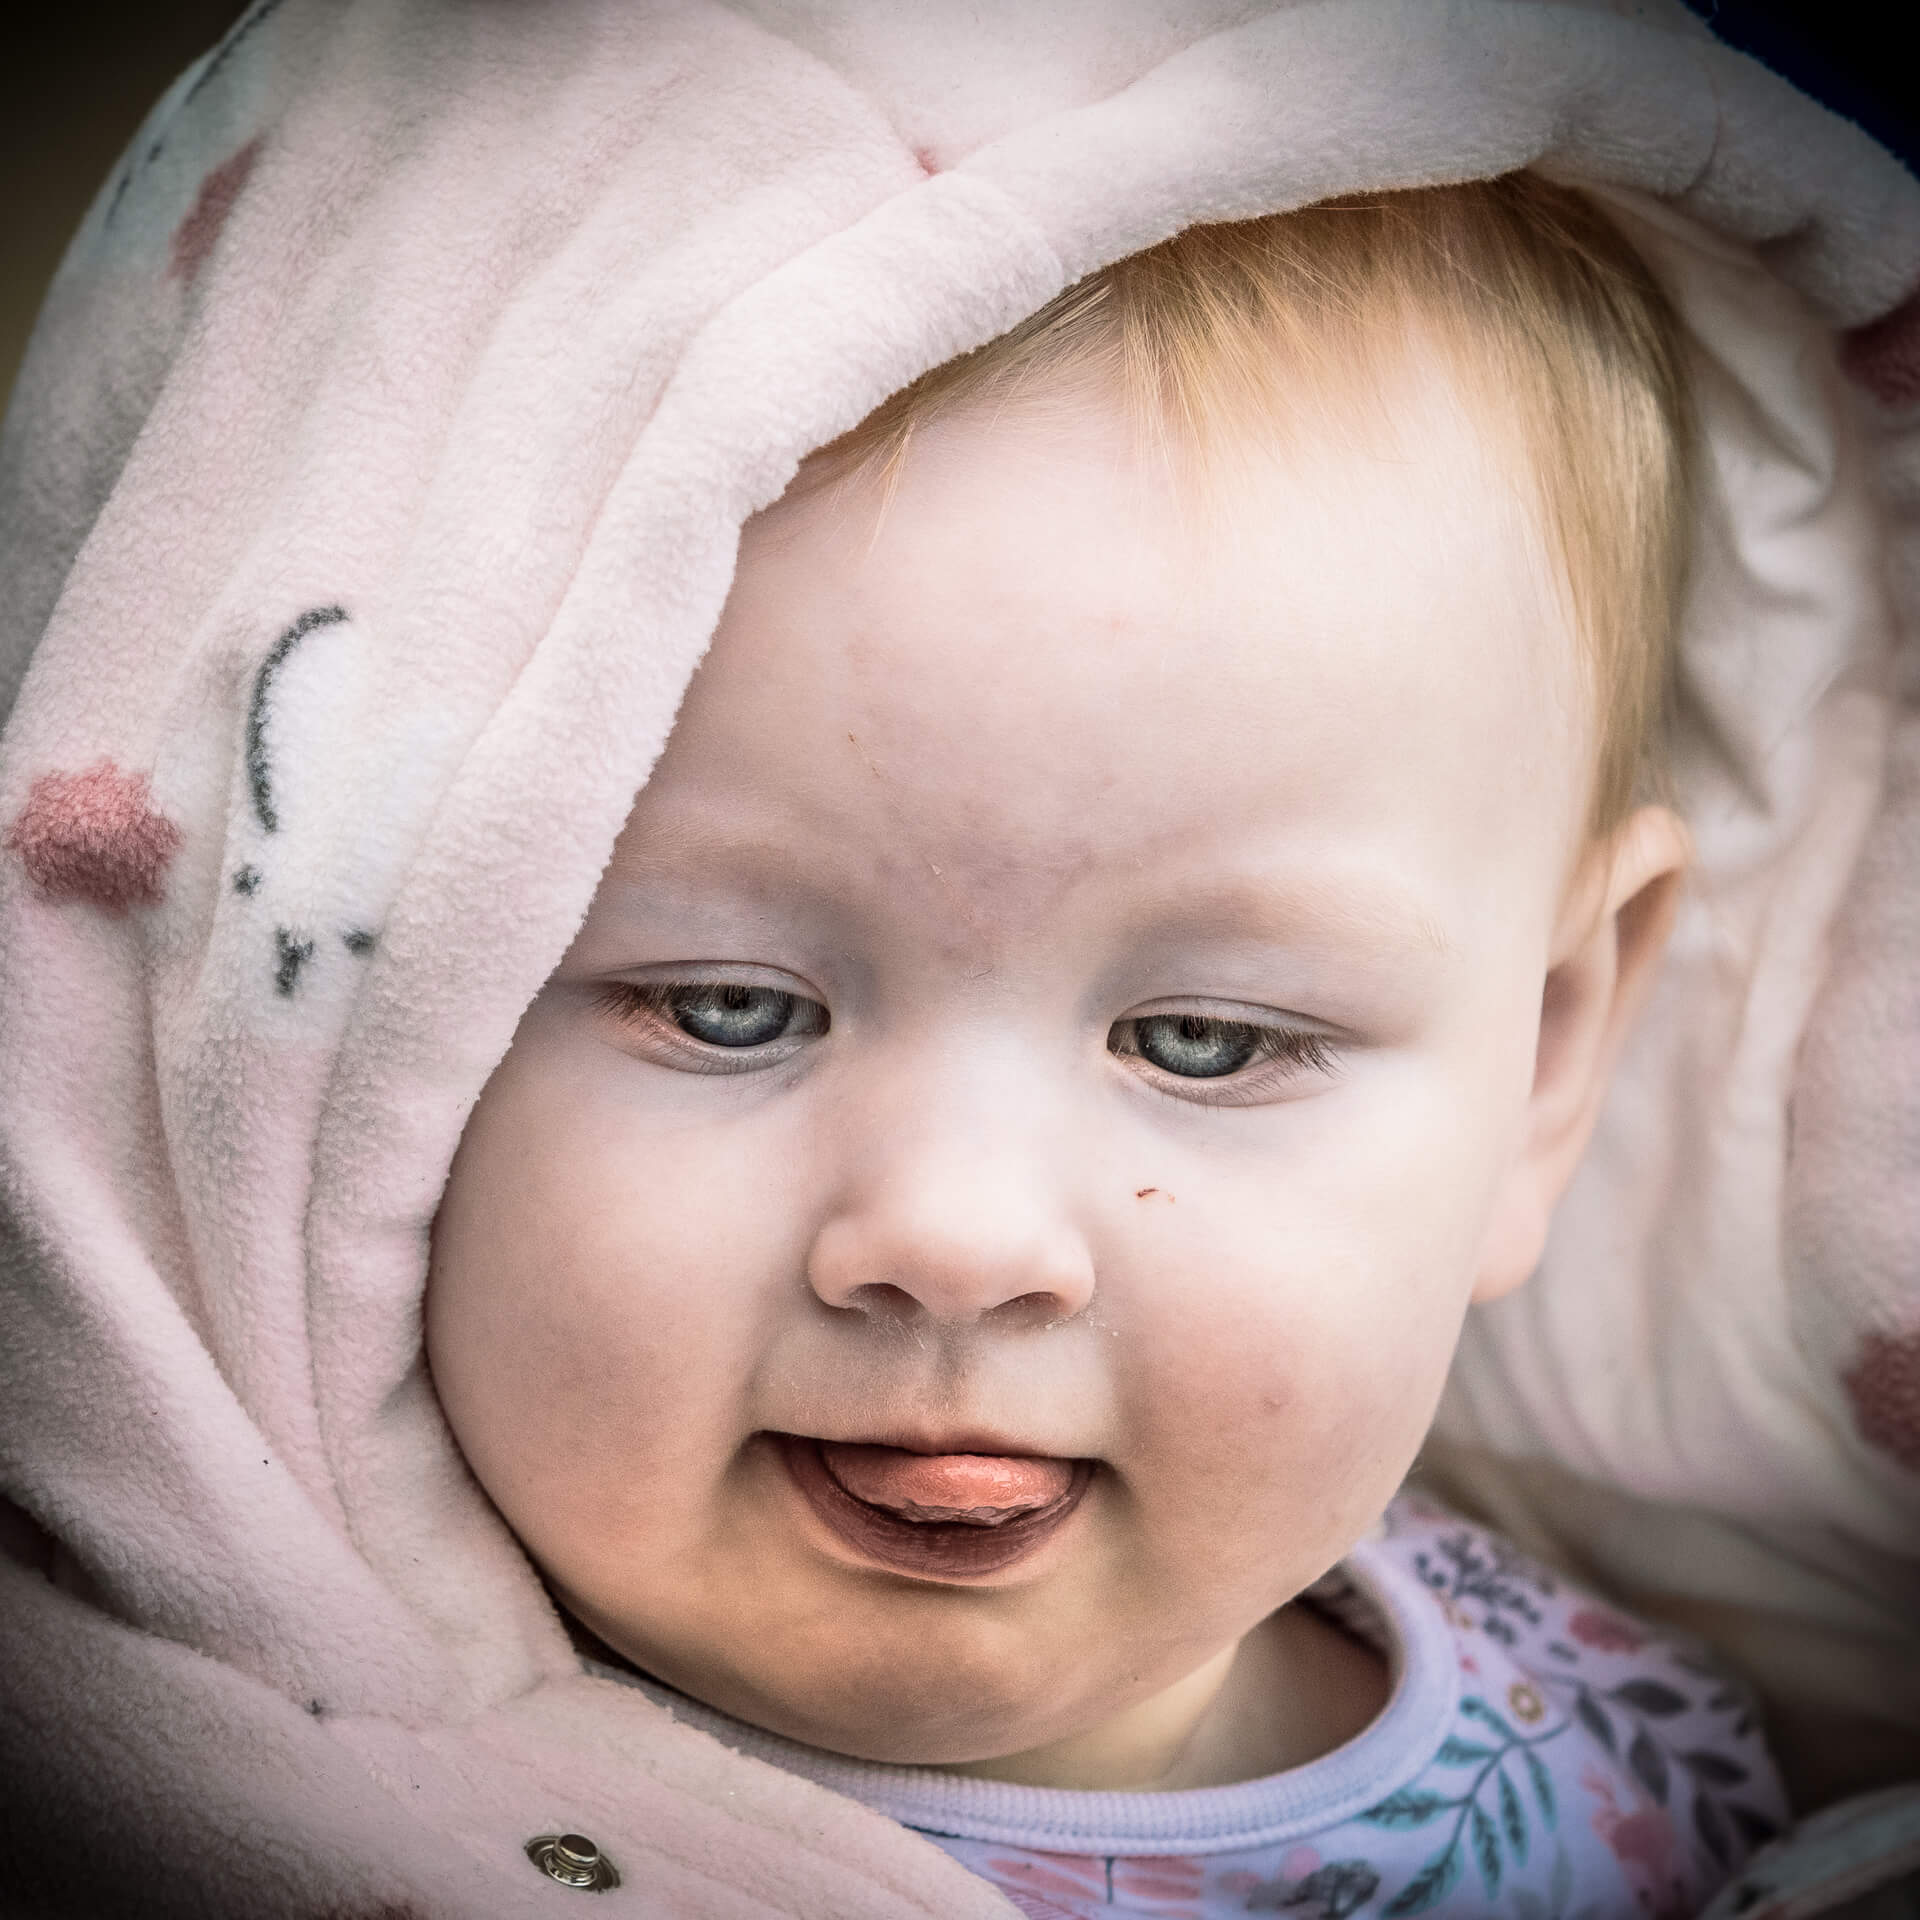 This image shows a blue eyed baby intently looking at something just below the camera. The baby is seen (in a head only shot) in a pink coloured hooded fleece, and she is sticking her tongue out.